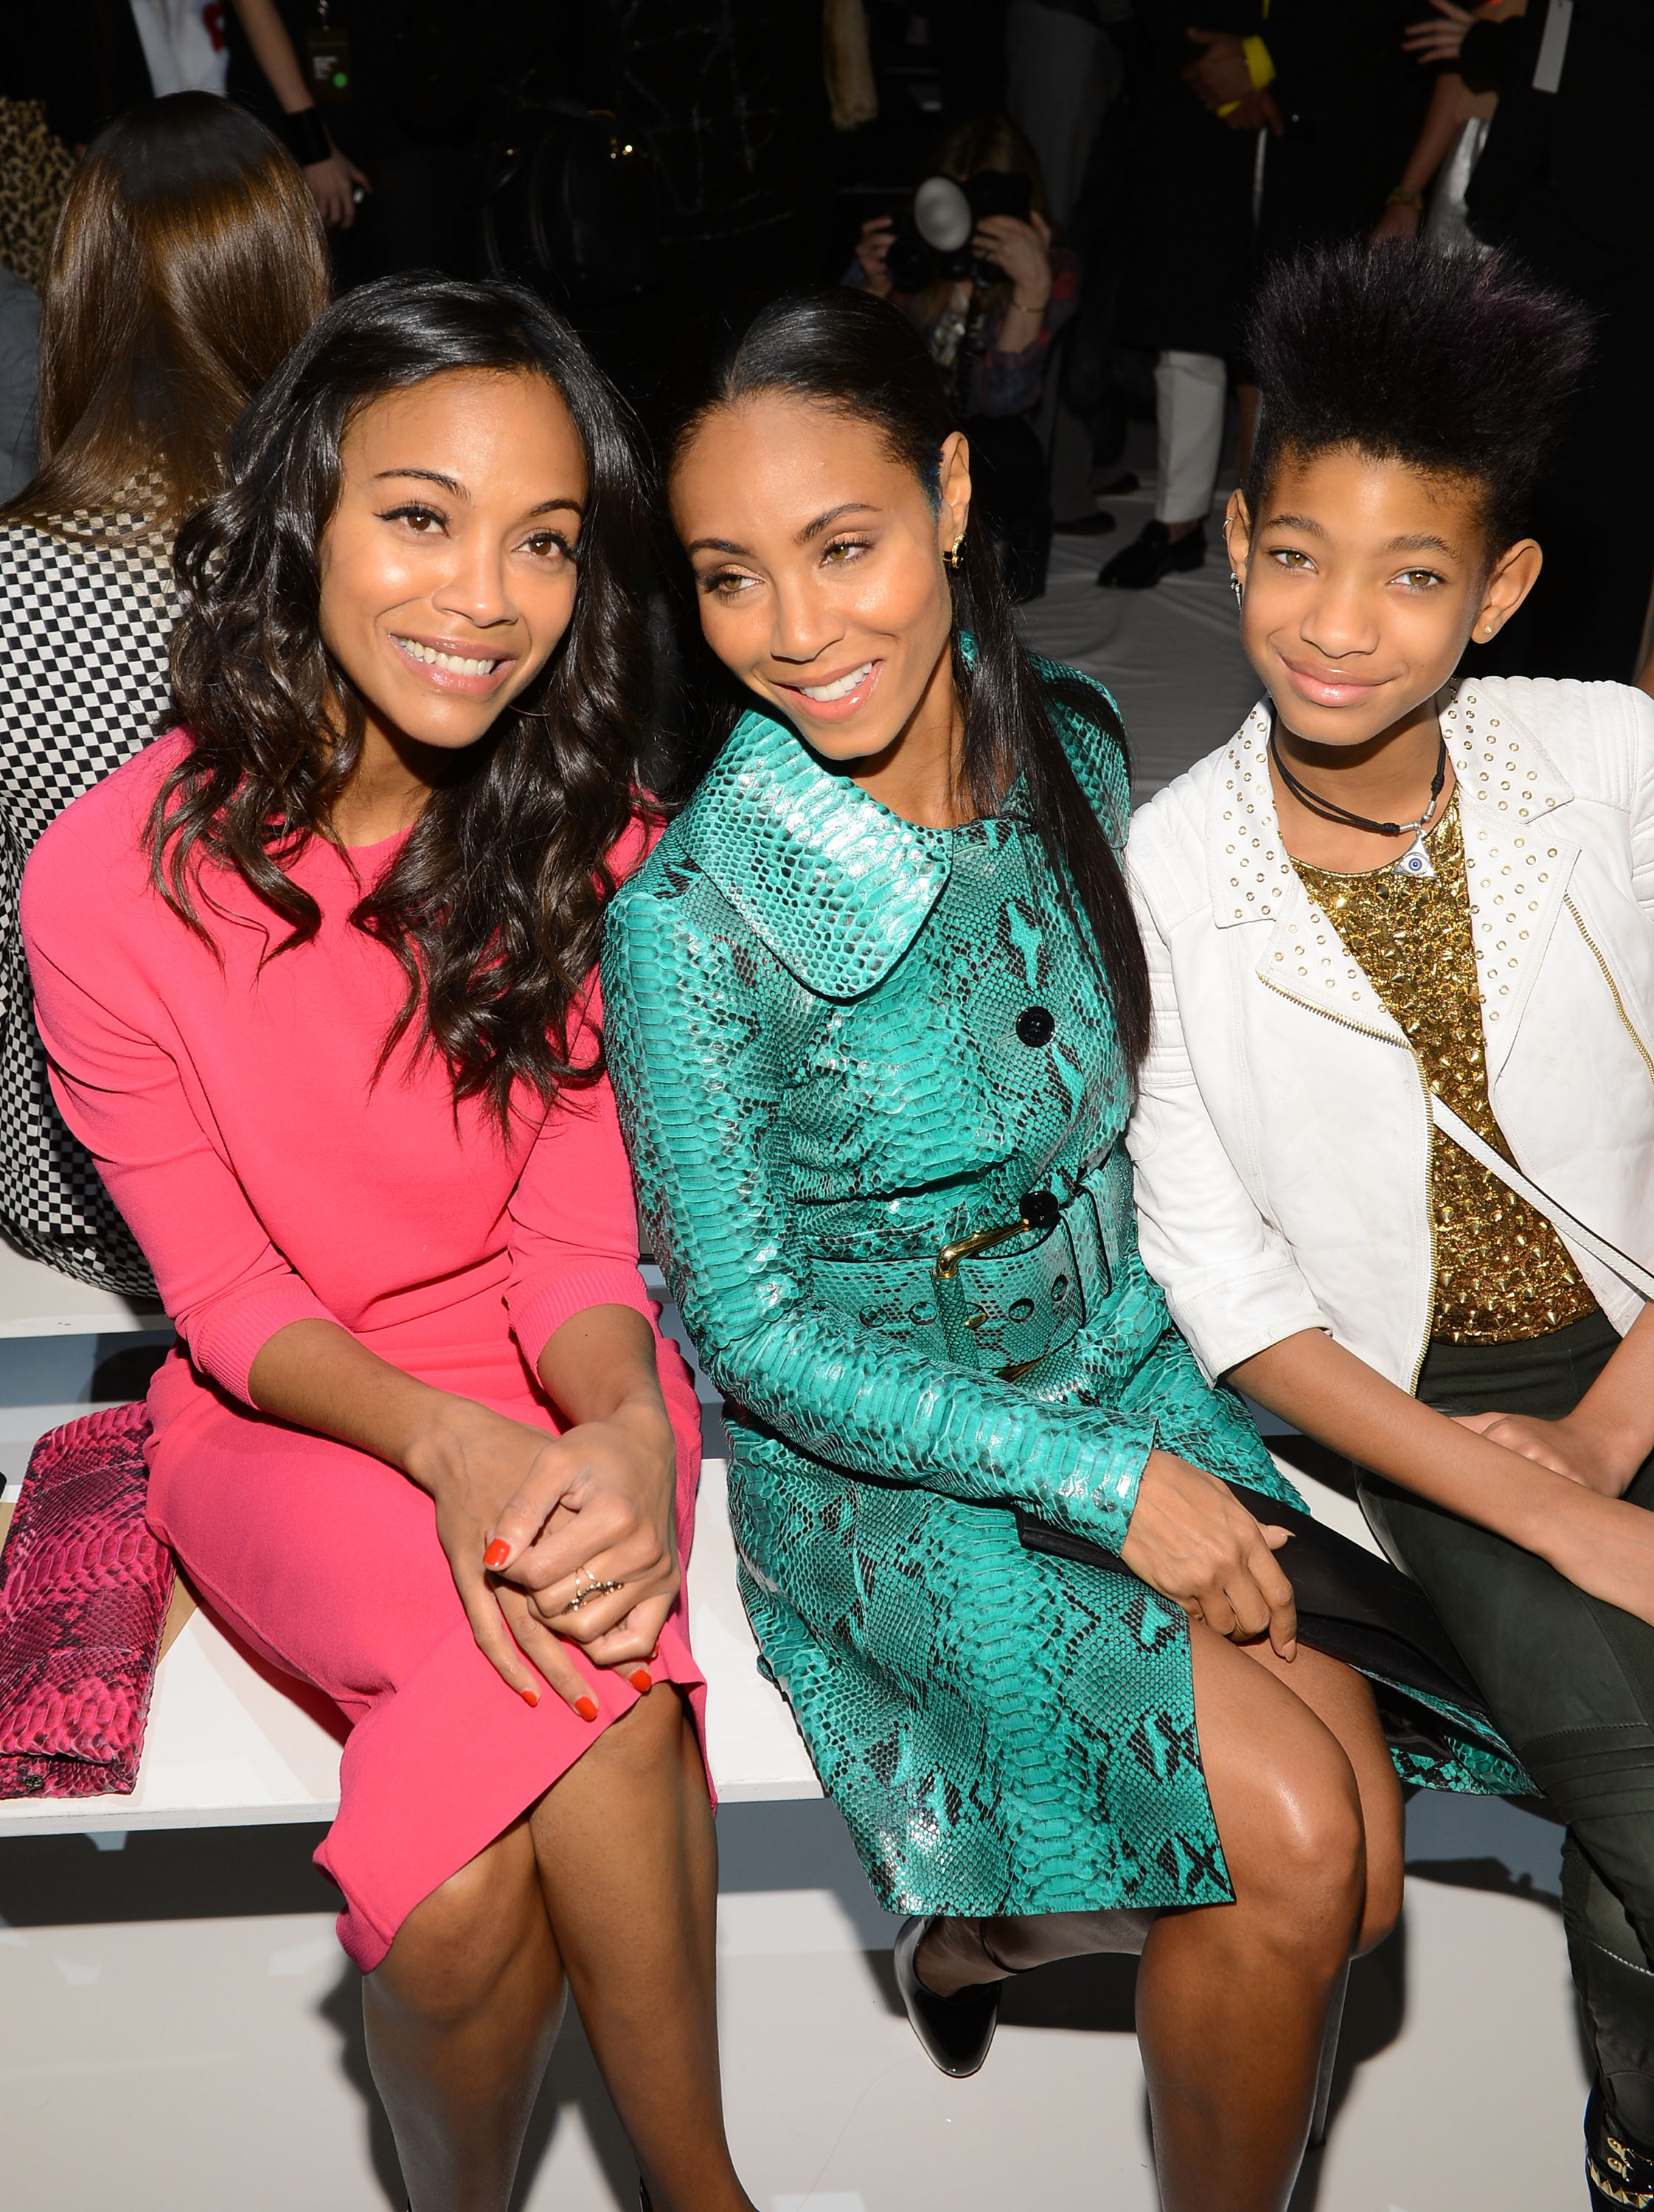 jada pinkett smith and zoe saldana - photo #4